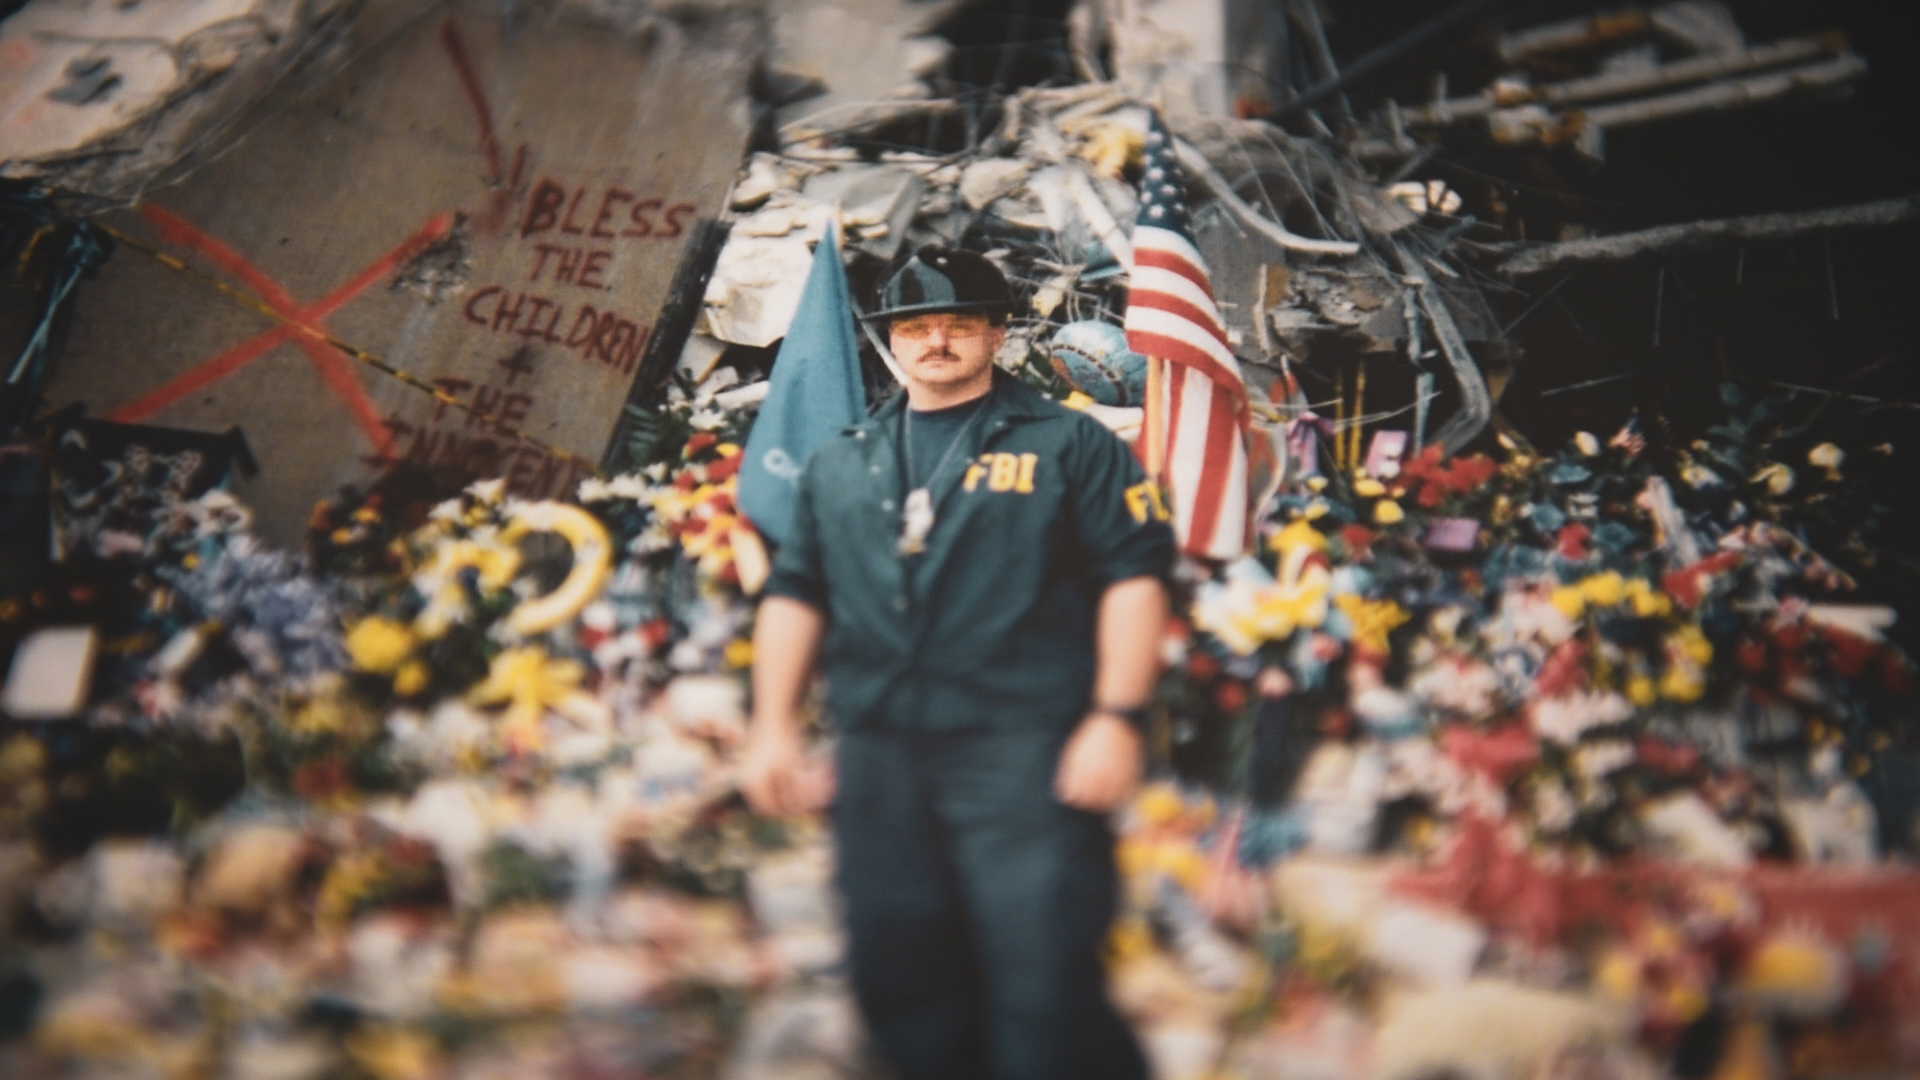 Barry Black Amid Debris After Oklahoma City Bombing